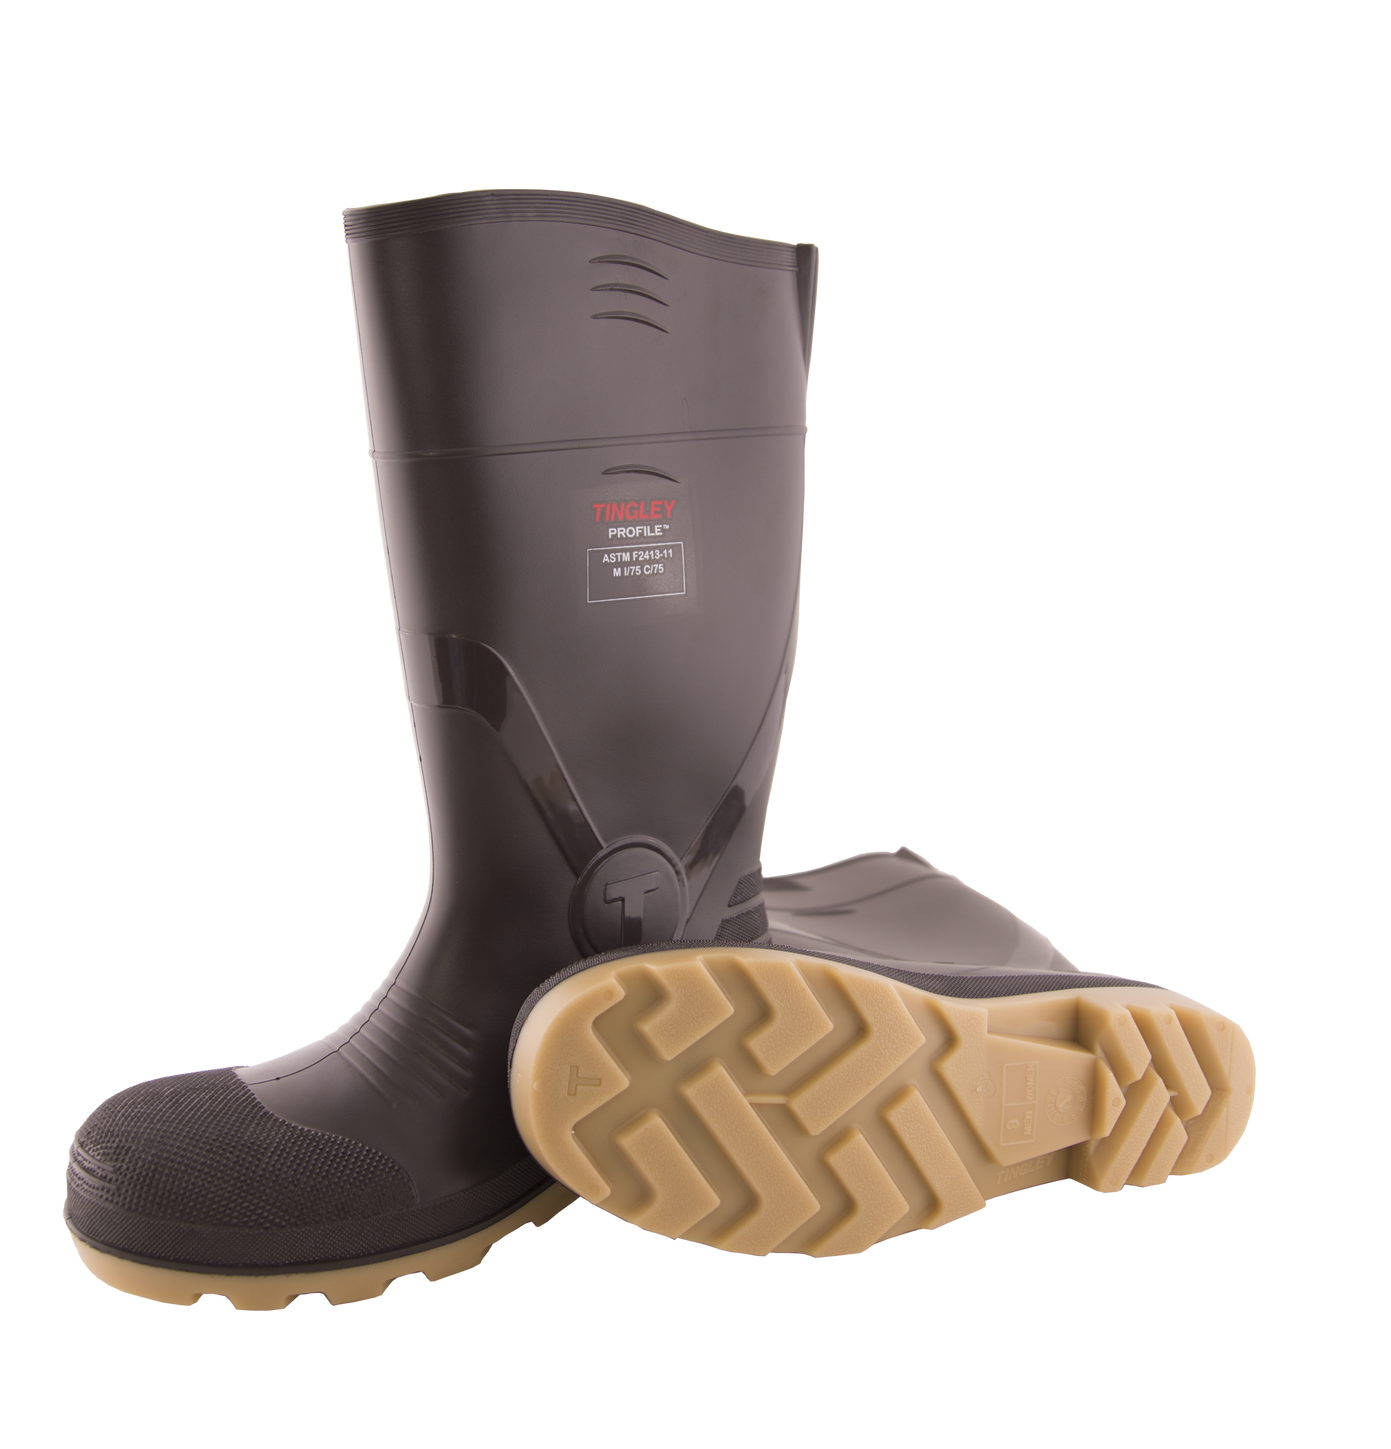 tingley-profile-pvc-work-boots-51254 -15-tall-composite-safety-toes-example.png